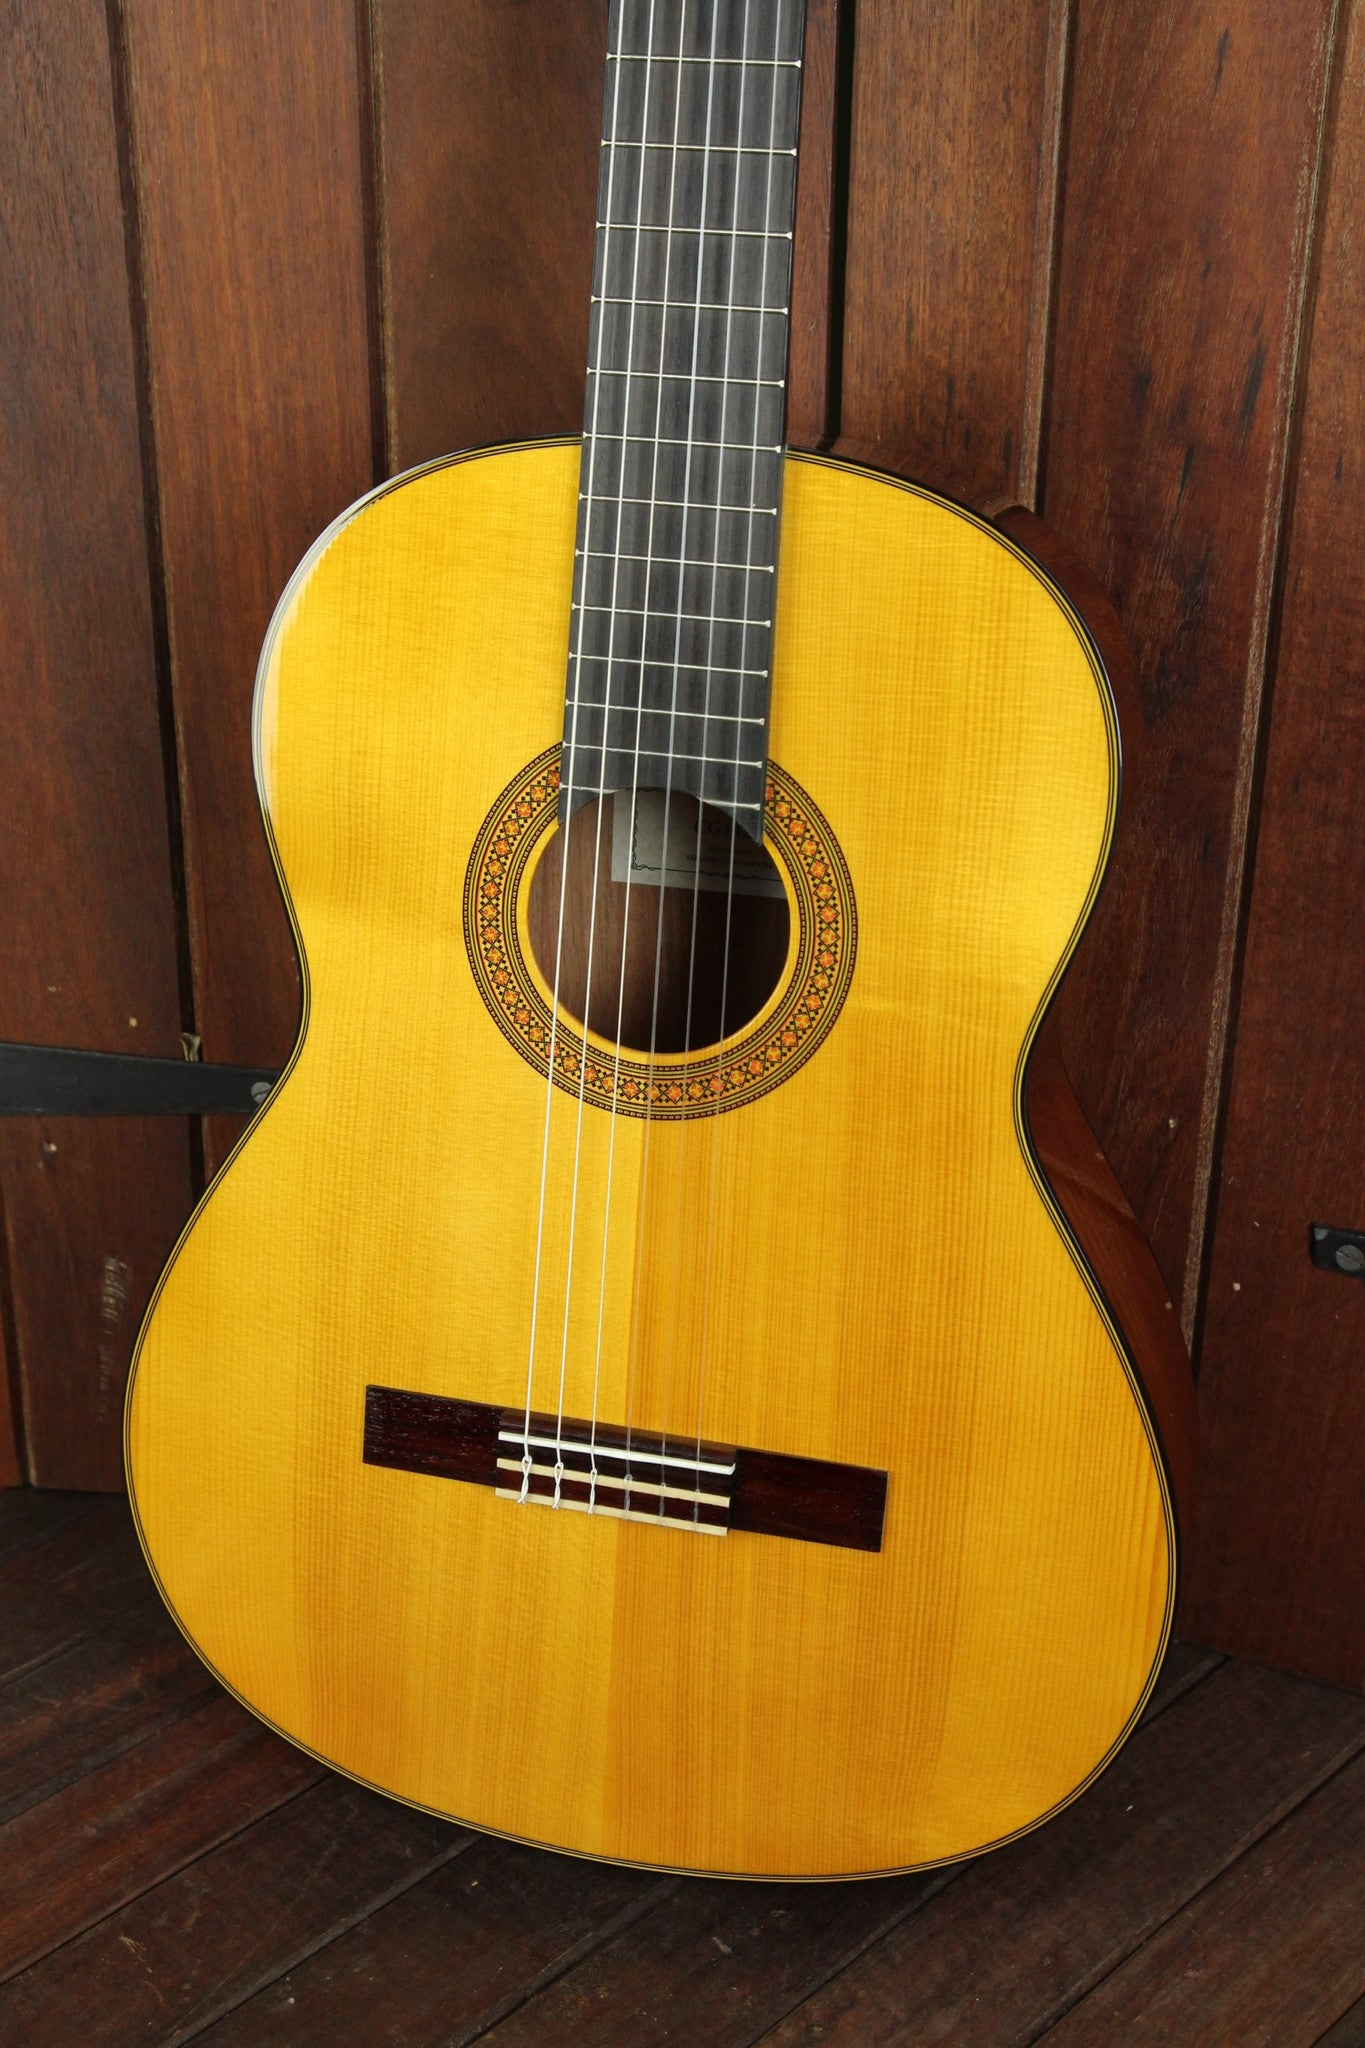 Yamaha CG142 Solid Top Nylon String Guitar - The Rock Inn - 4